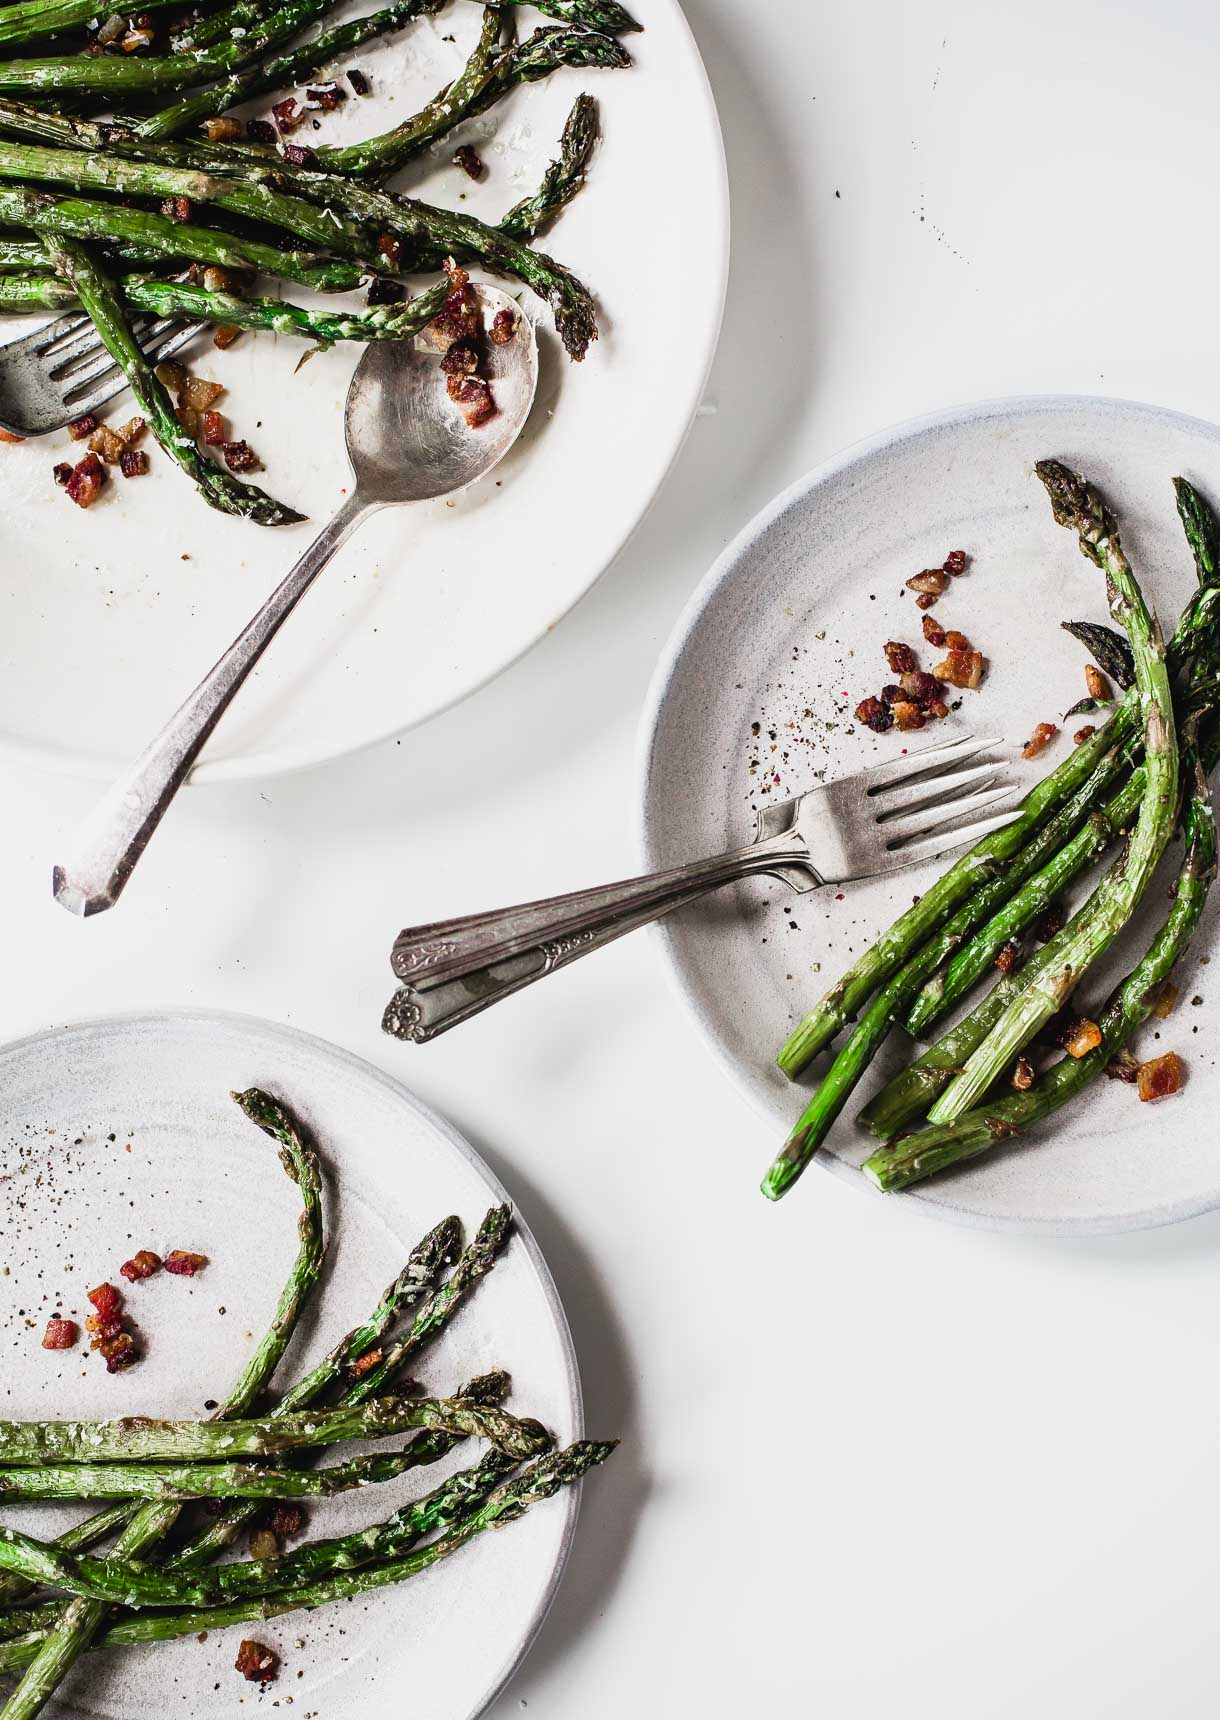 Best Asparagus Recipe Ever! With bacon and parmesan.